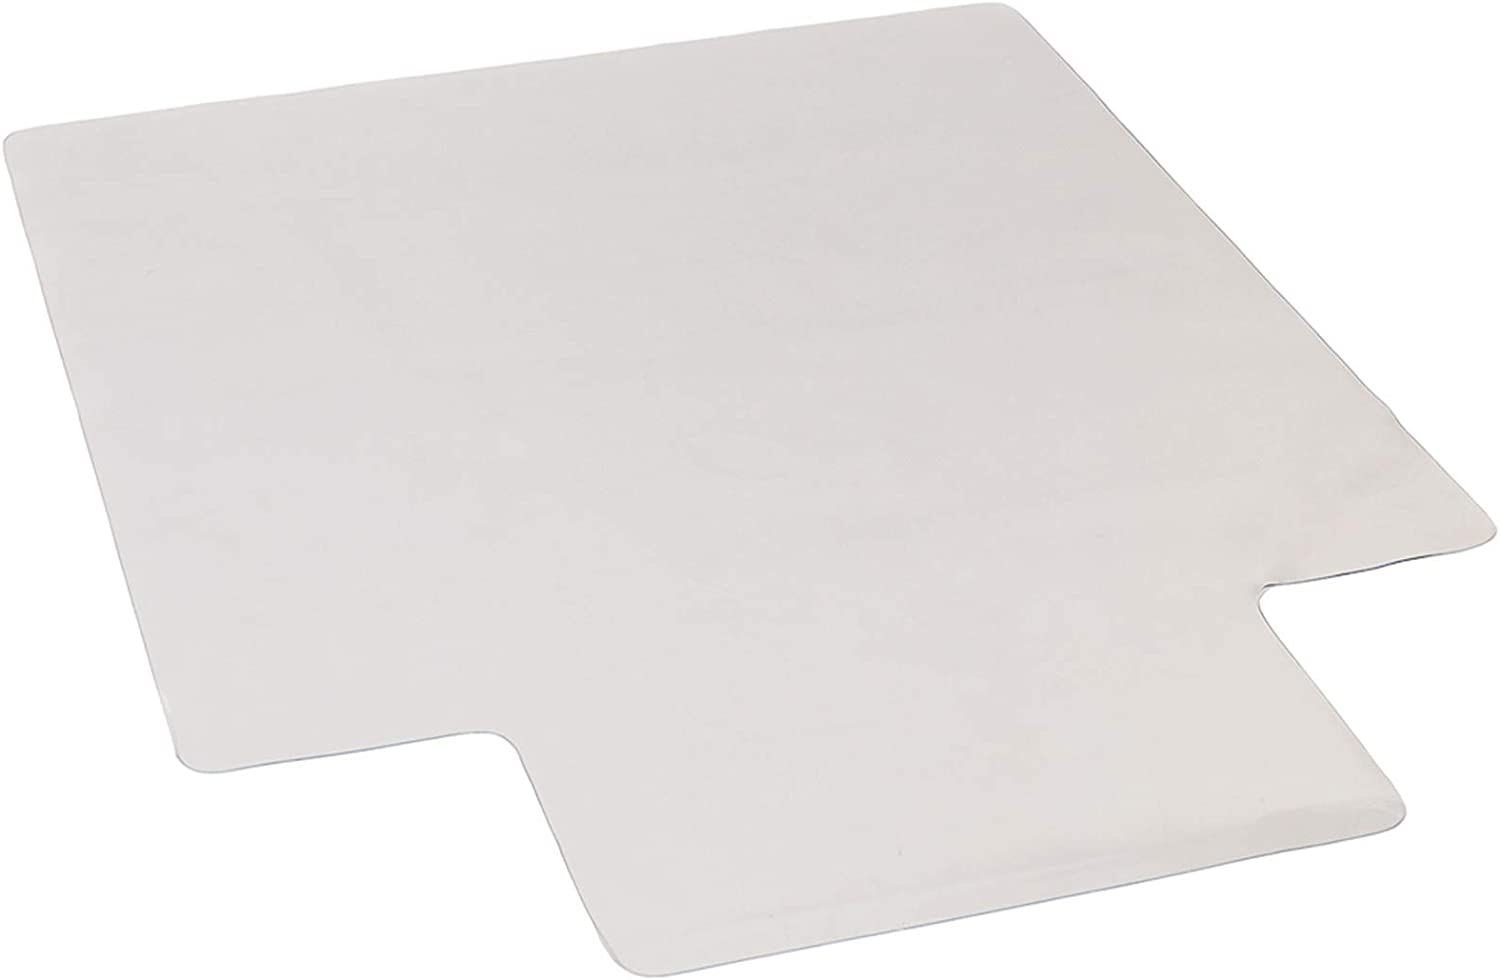 Mushugu gt3-DL Now free shipping 3PCS PVC Rapid rise Matte Floor for Mat Protective Home-use